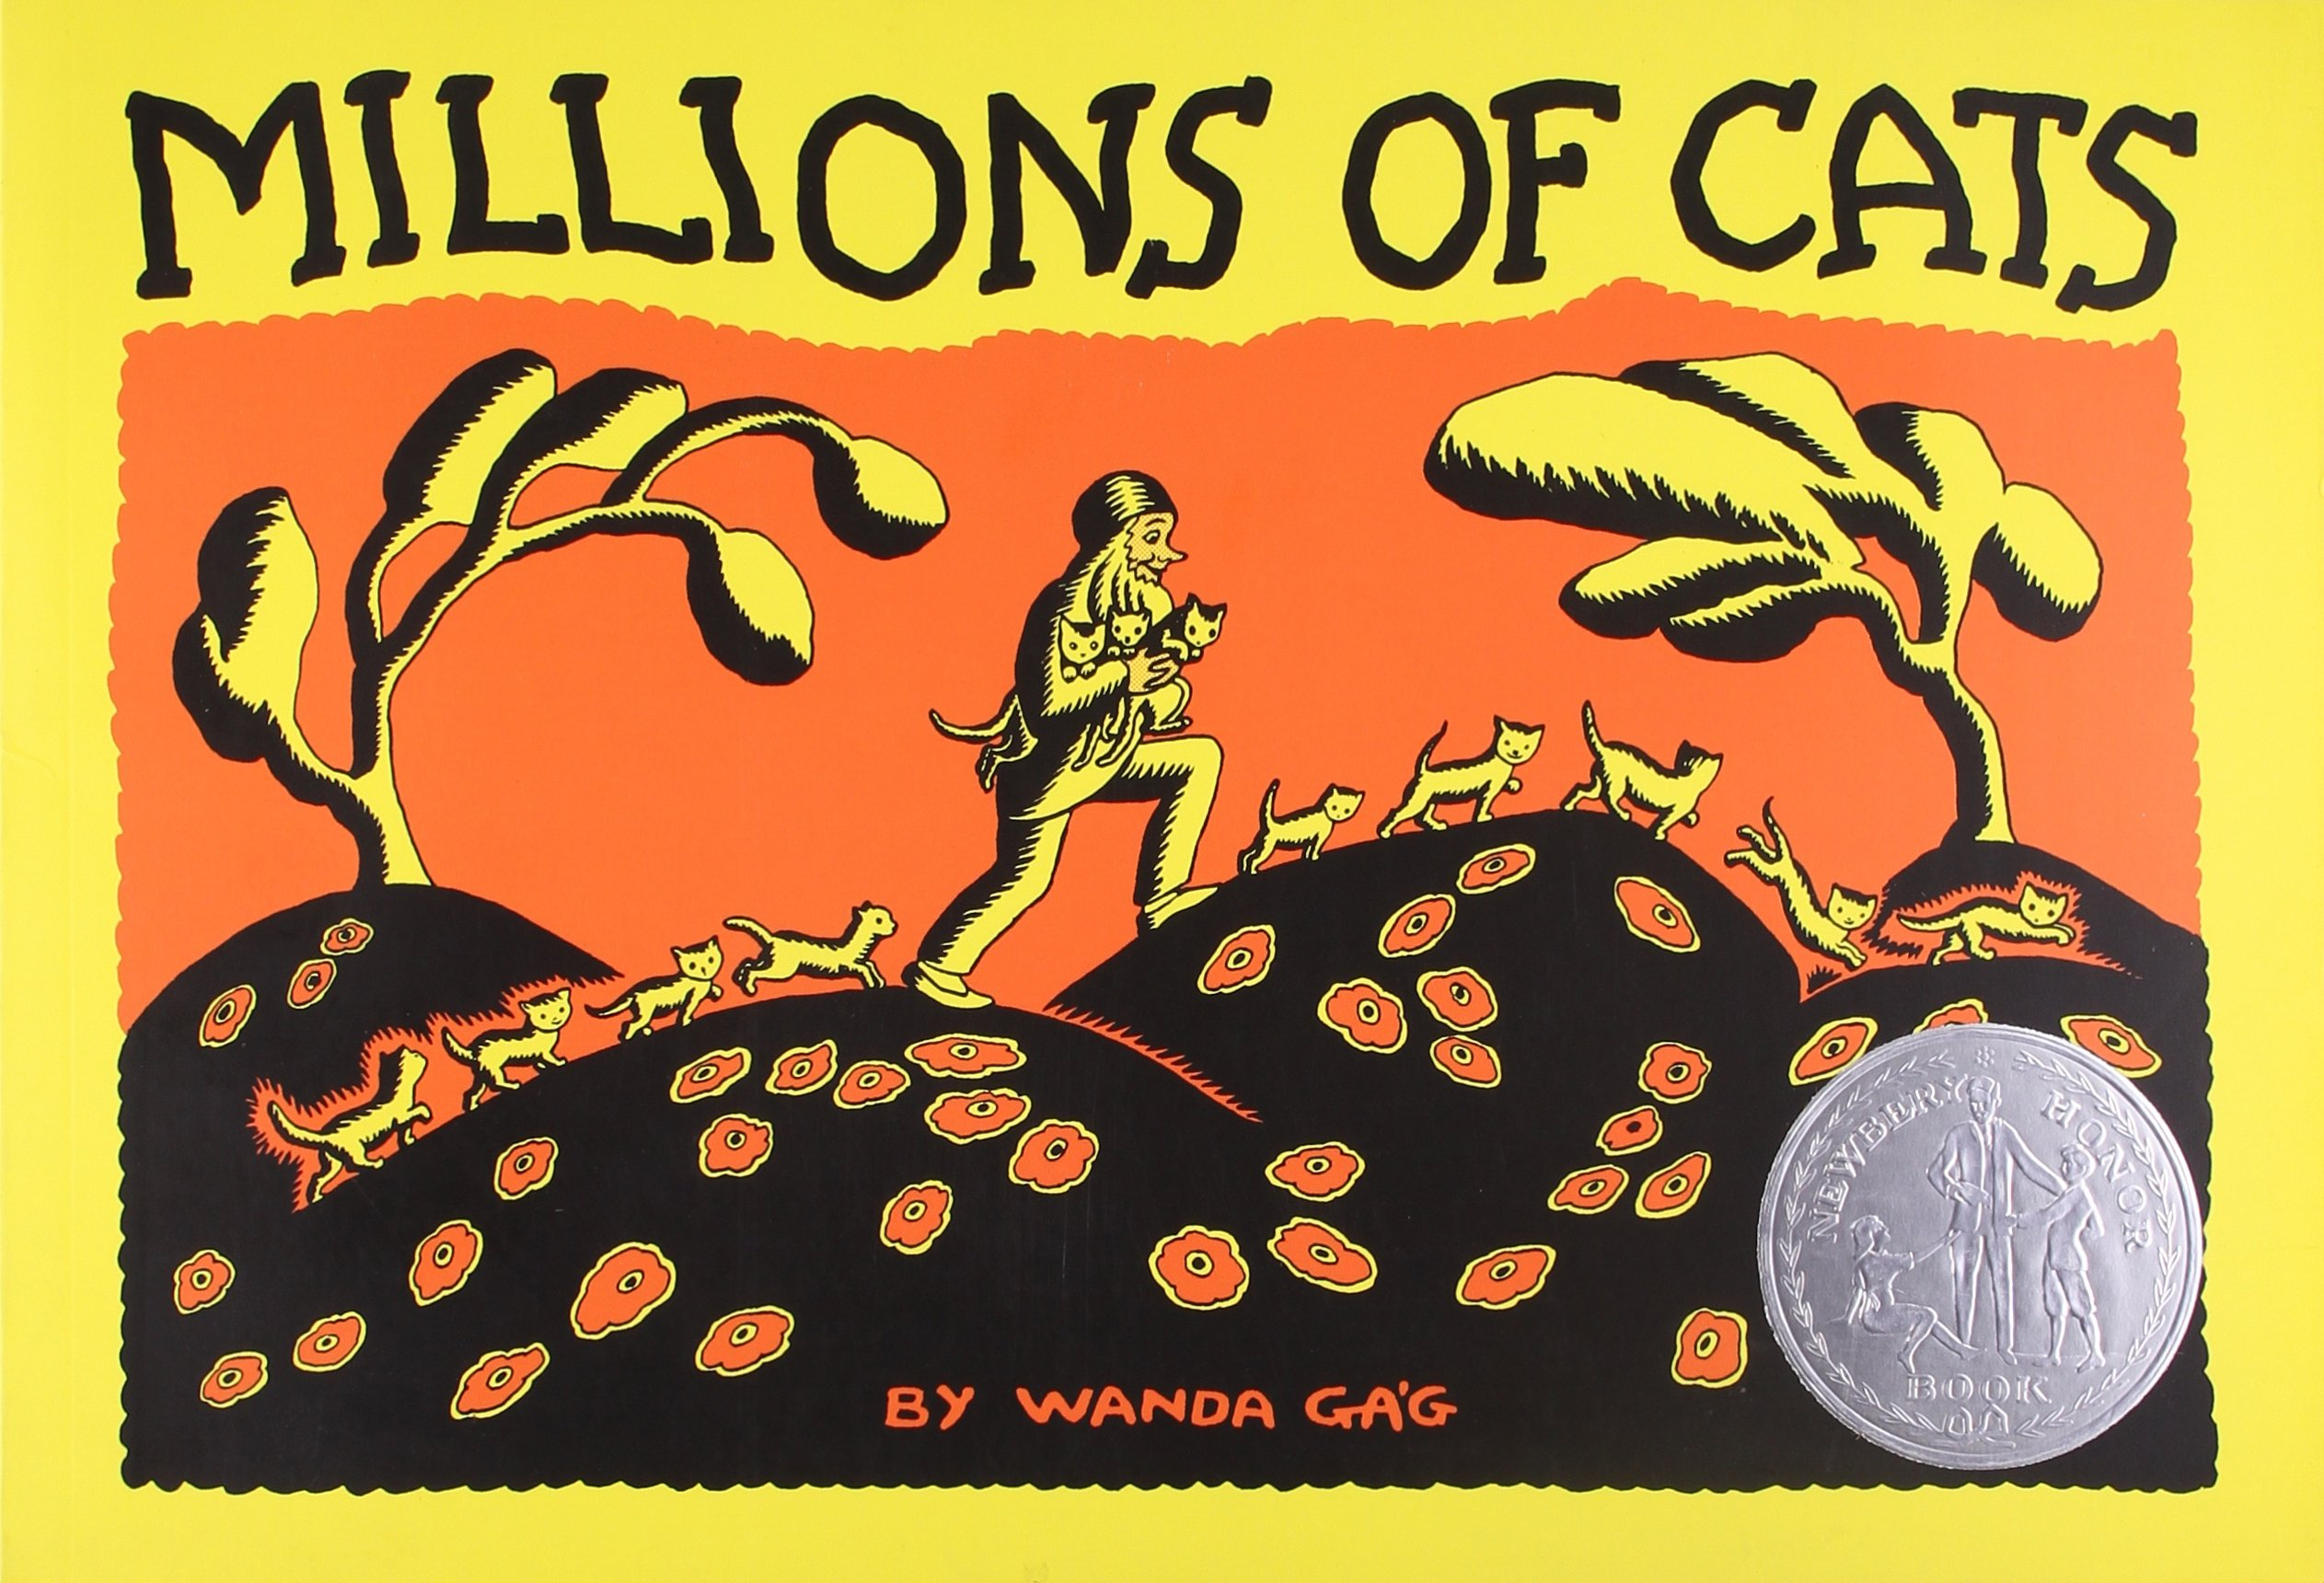 Millions of Cats, by Wanda Gag.                                                                                                                            A man seeking a new feline friend is unable to pick just one, and brings home way too many.                                                                                                                            Buy now: Millions of Cats